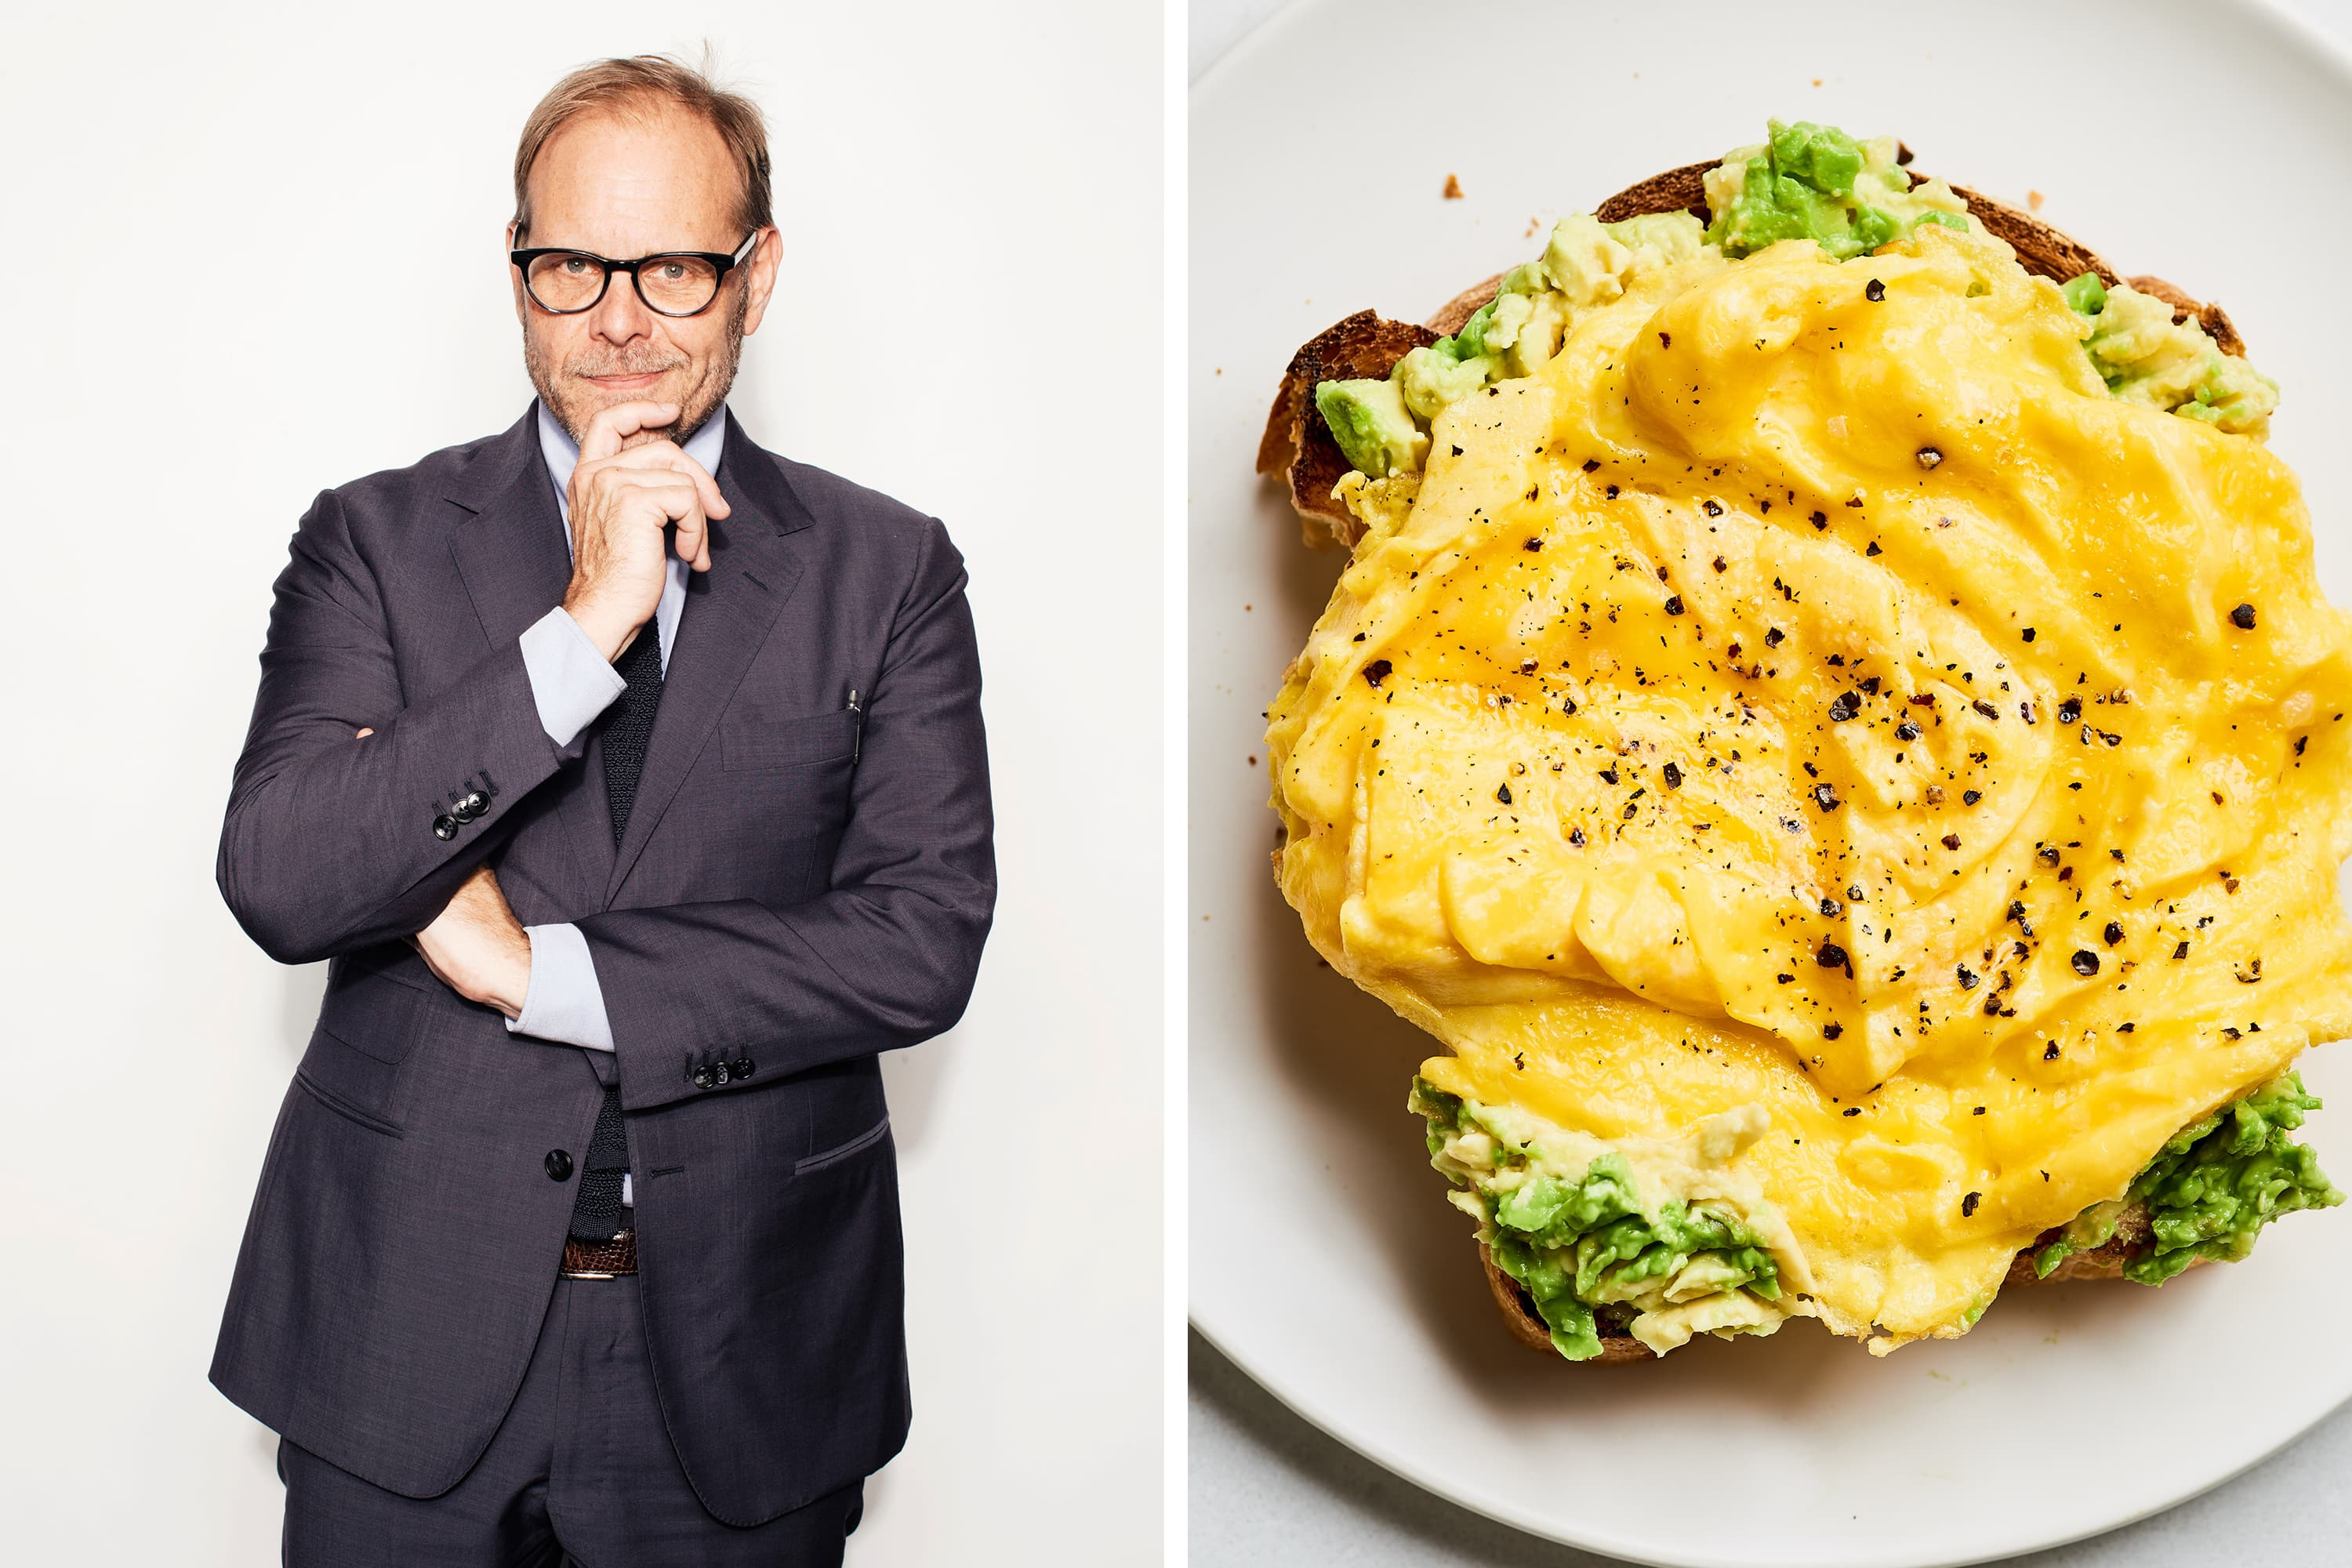 Alton Brown's Secret to Better Scrambled Eggs Might Surprise You